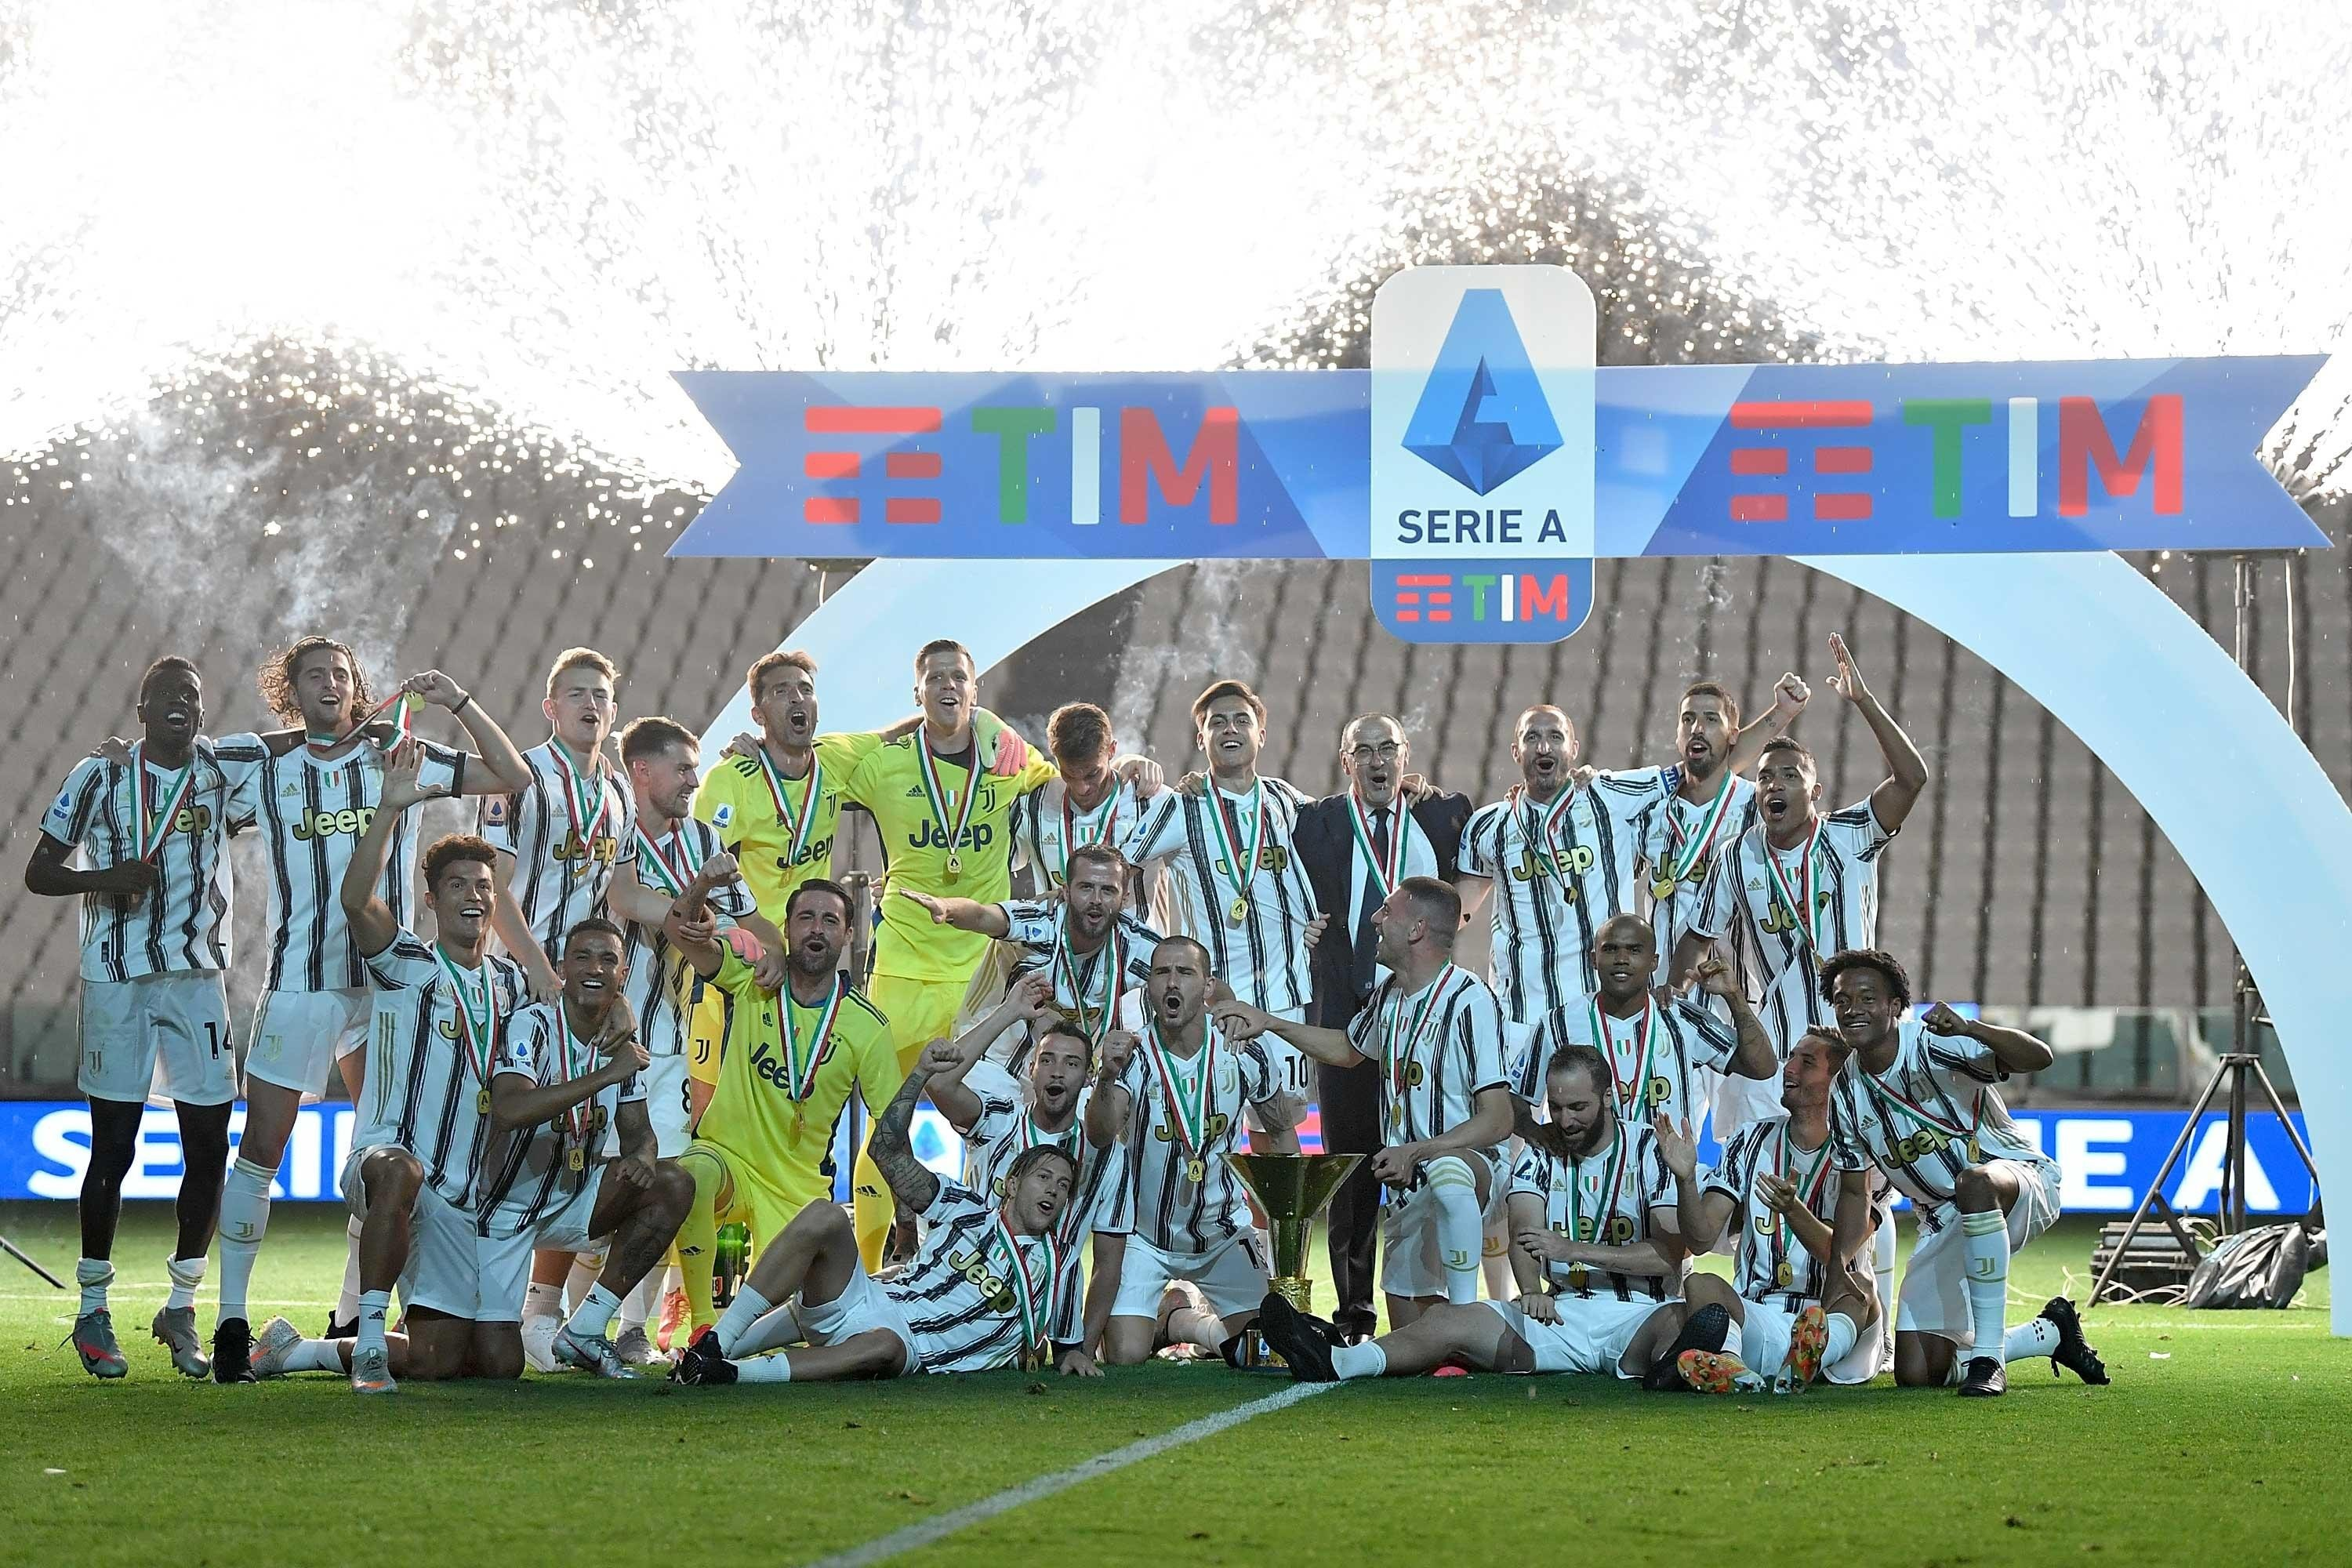 THE SERIE A TIM 2019-2020 WINNING CEREMONY PHOTO GALLERY IS ONLINE